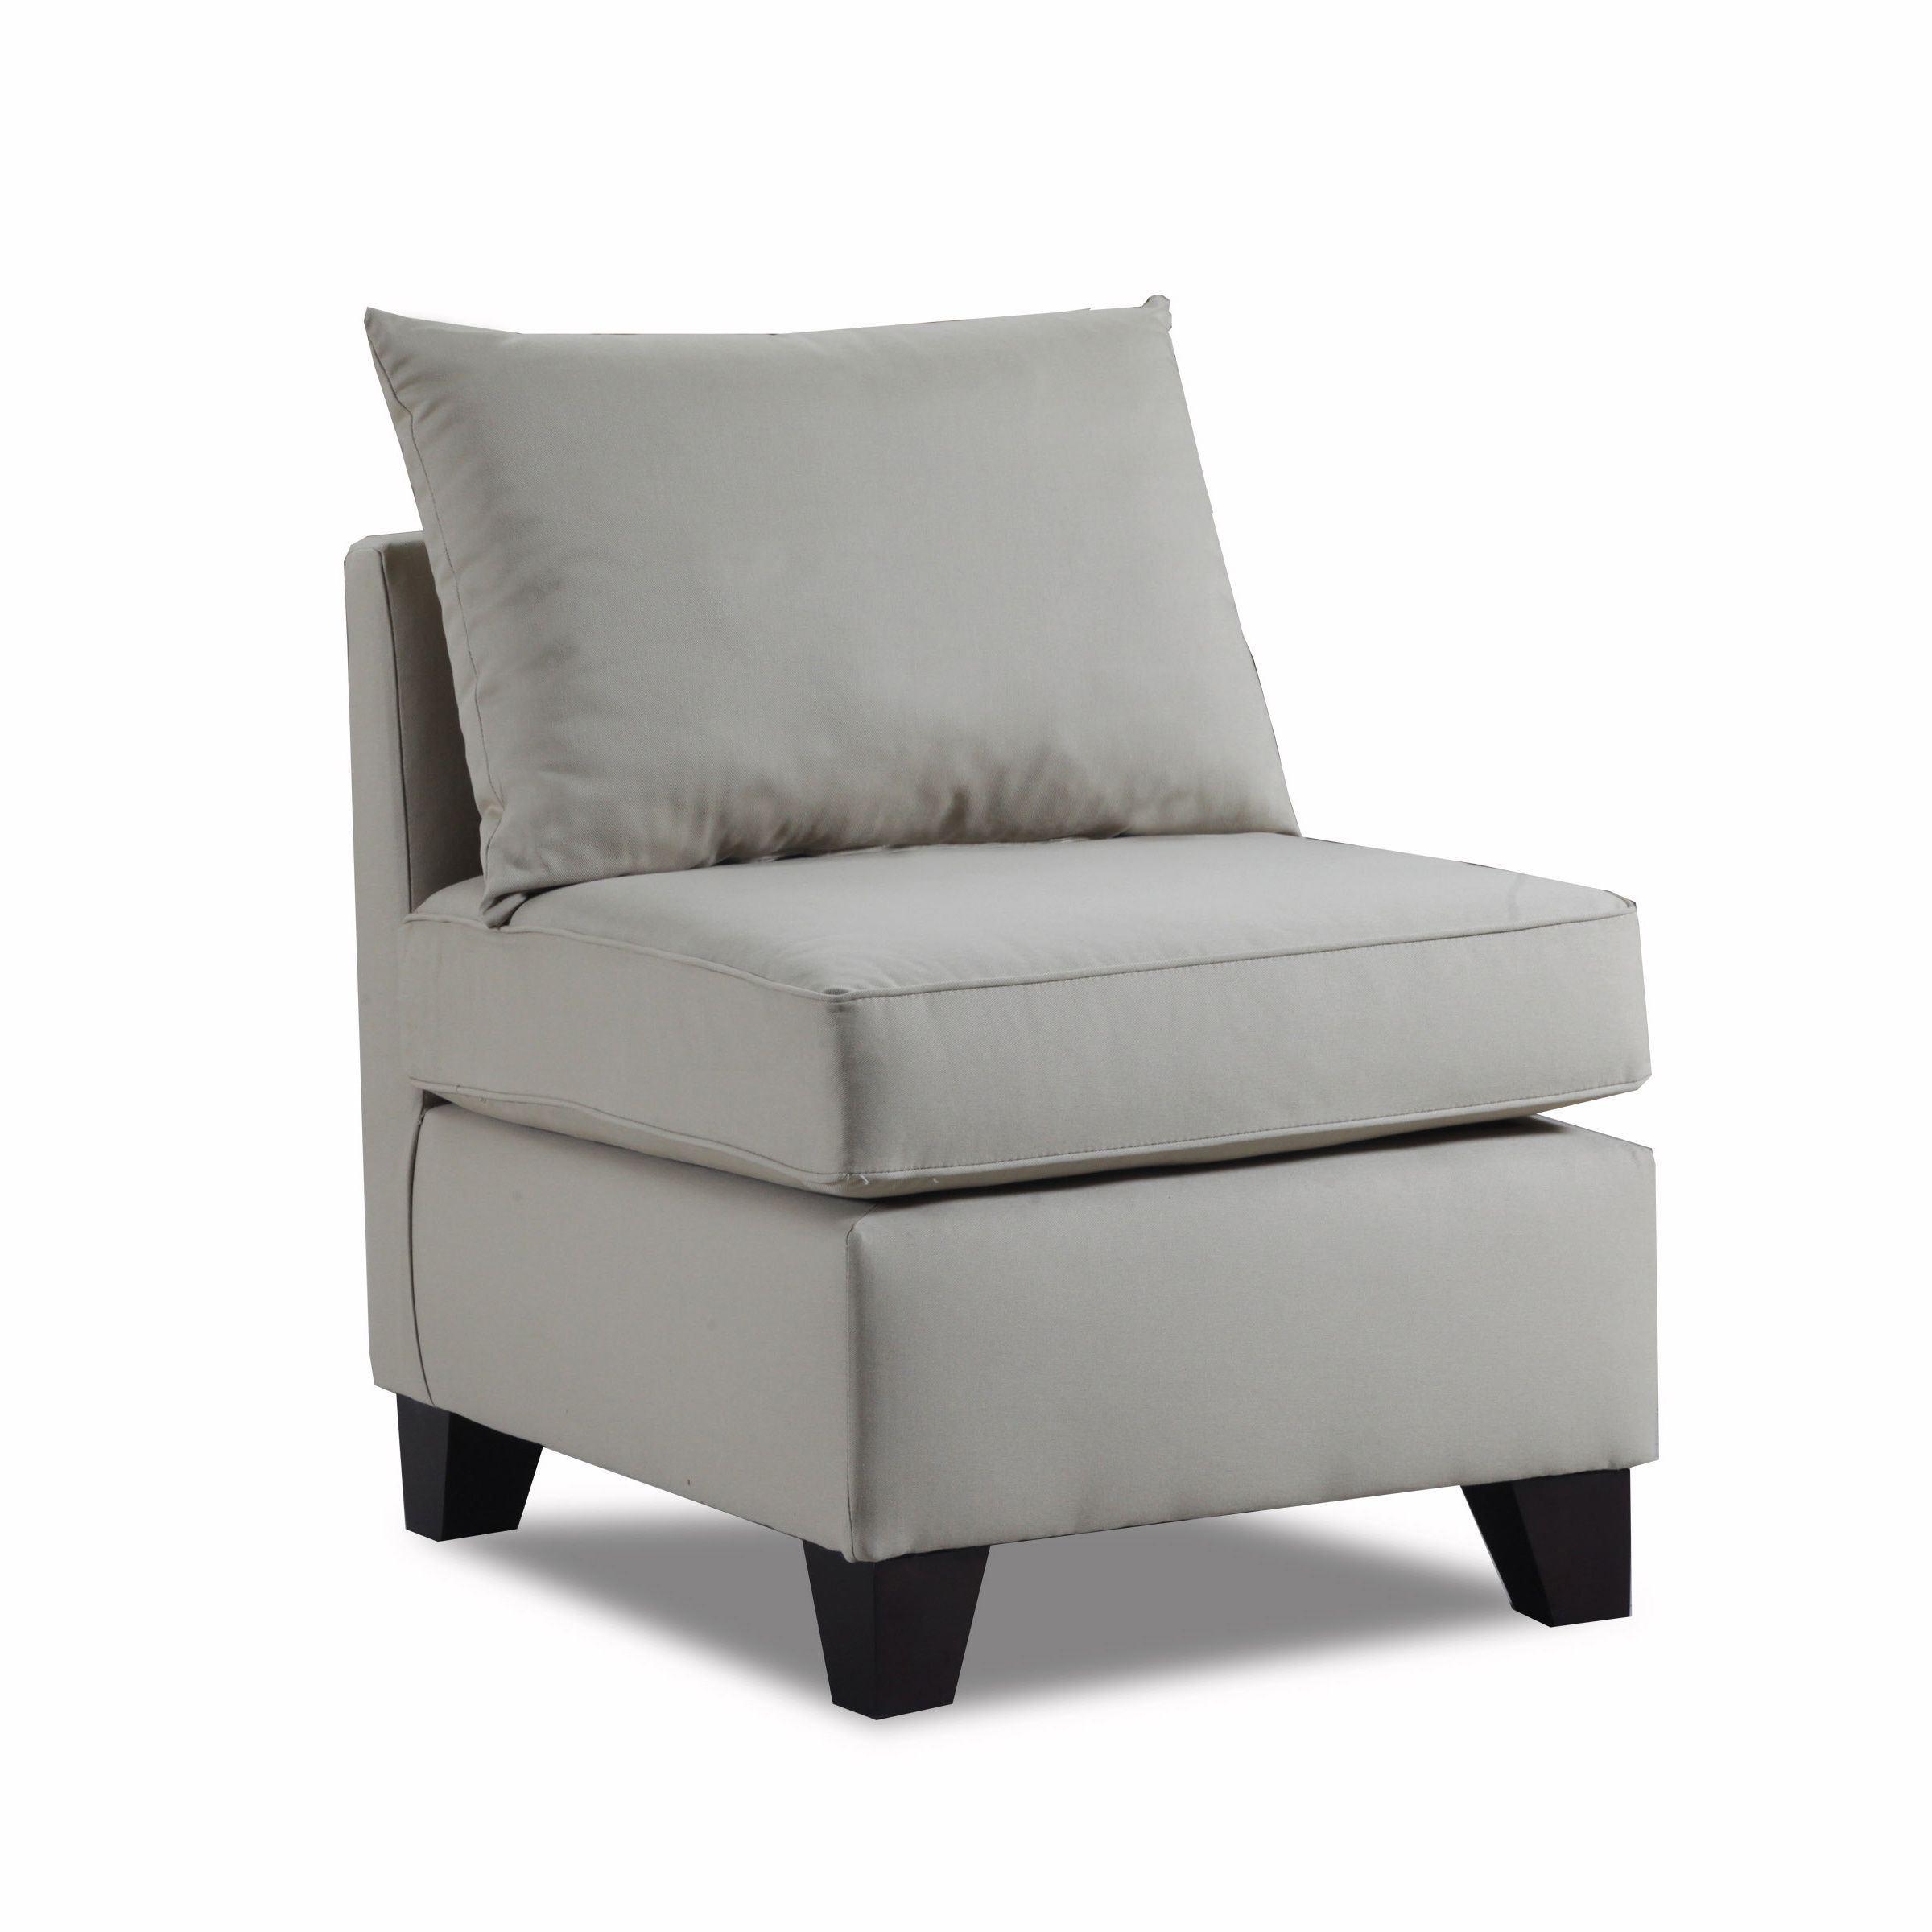 carolina accents belle meade single chair (belle meade single  - carolina accents belle meade single chair (belle meade single chair